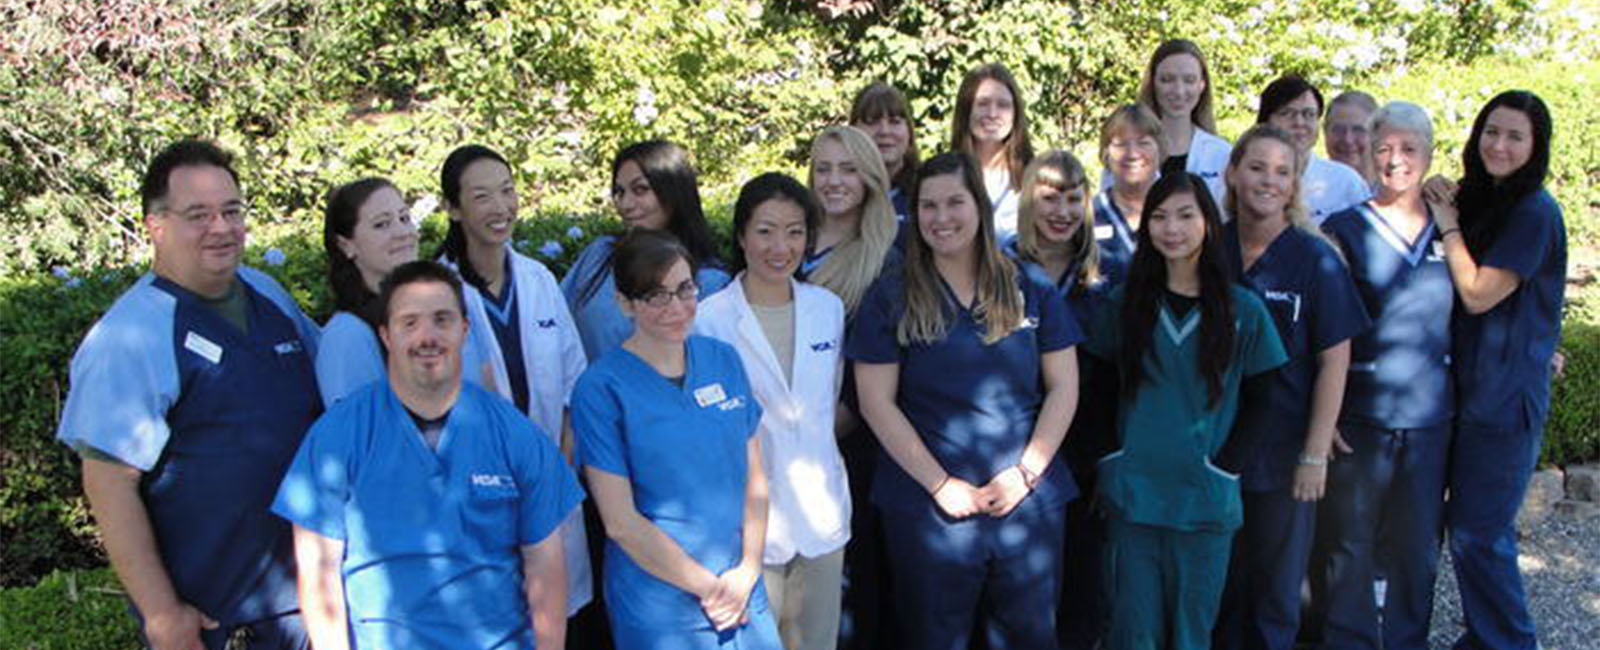 Homepage Team Picture of VCA Almaden Valley Animal Hospital